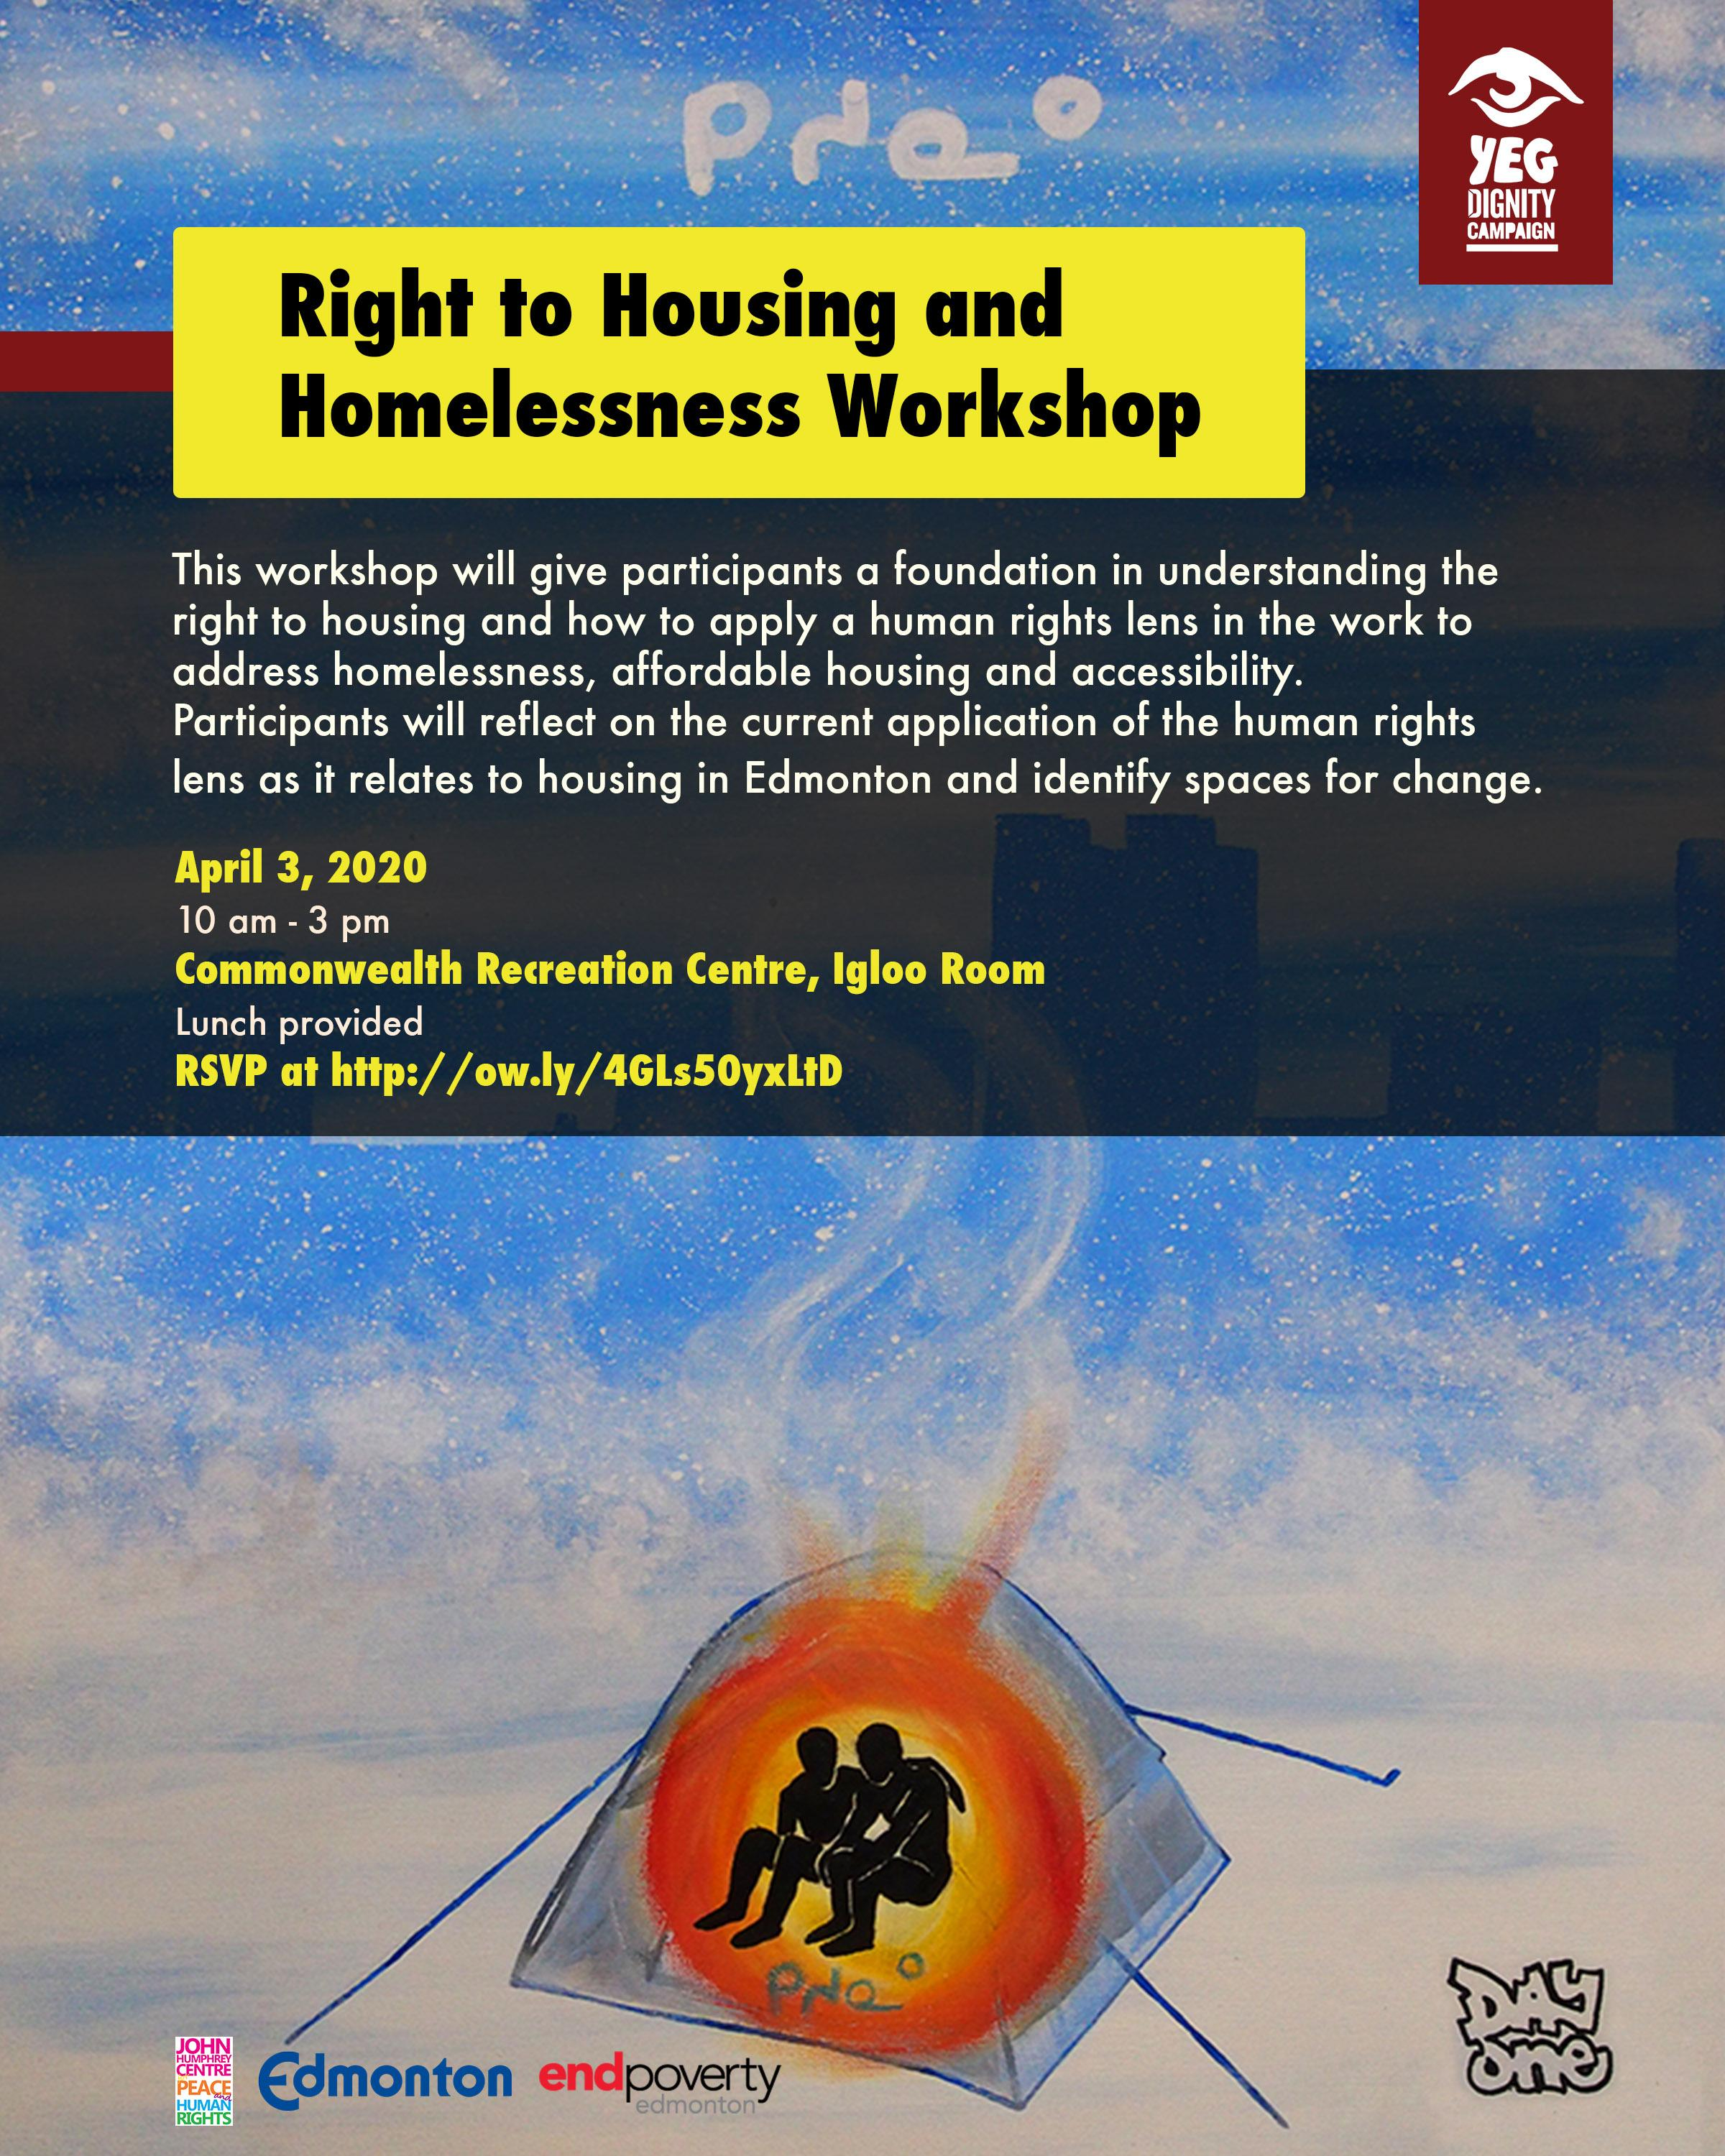 Right to Housing and Homelessness Workshop